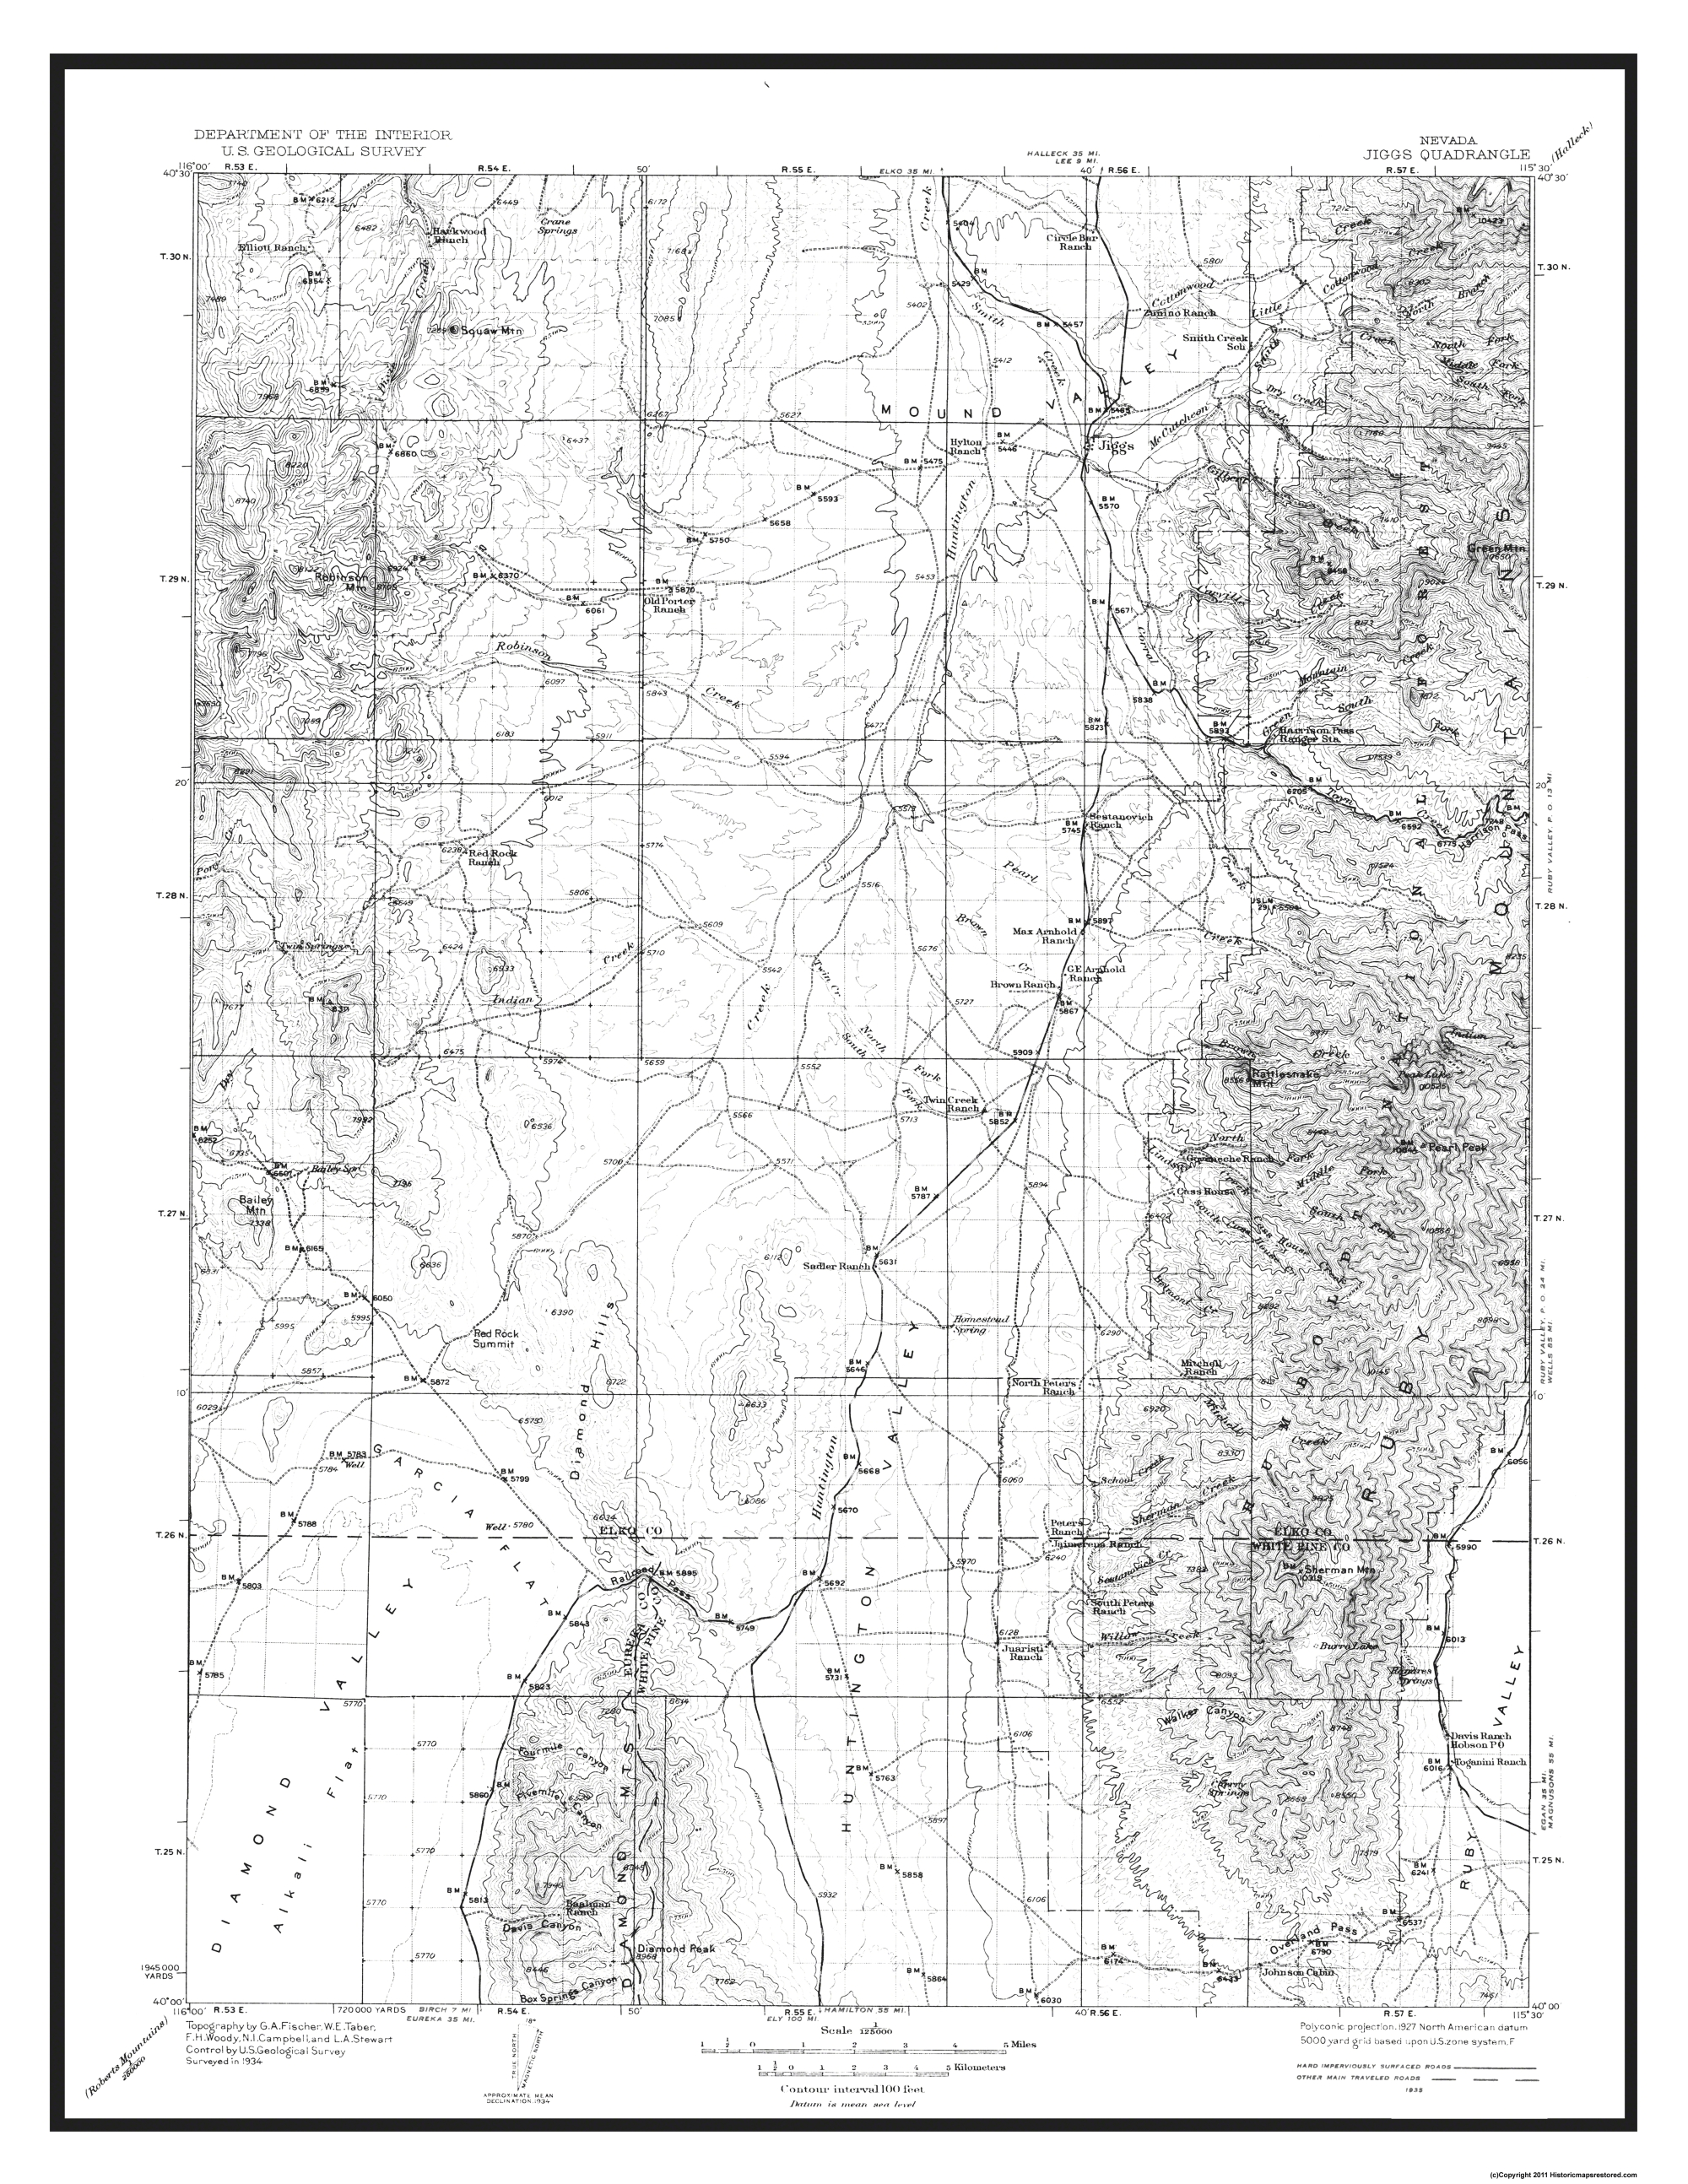 Topographical Map - Jiggs Nevada 1935 on elko nevada winter, north fork nevada, wood hills nevada, craigslist elko nevada, abandoned nevada, mulberry woods nevada, ely nevada, lander nevada, west wendover nevada, elko nevada map, jiggs nevada, nye county nevada, elko nevada attractions, carlin nevada, aerial view of elko nevada, rixie nevada, elko nevada school, white pine county nevada, wells nevada, deeth nevada,